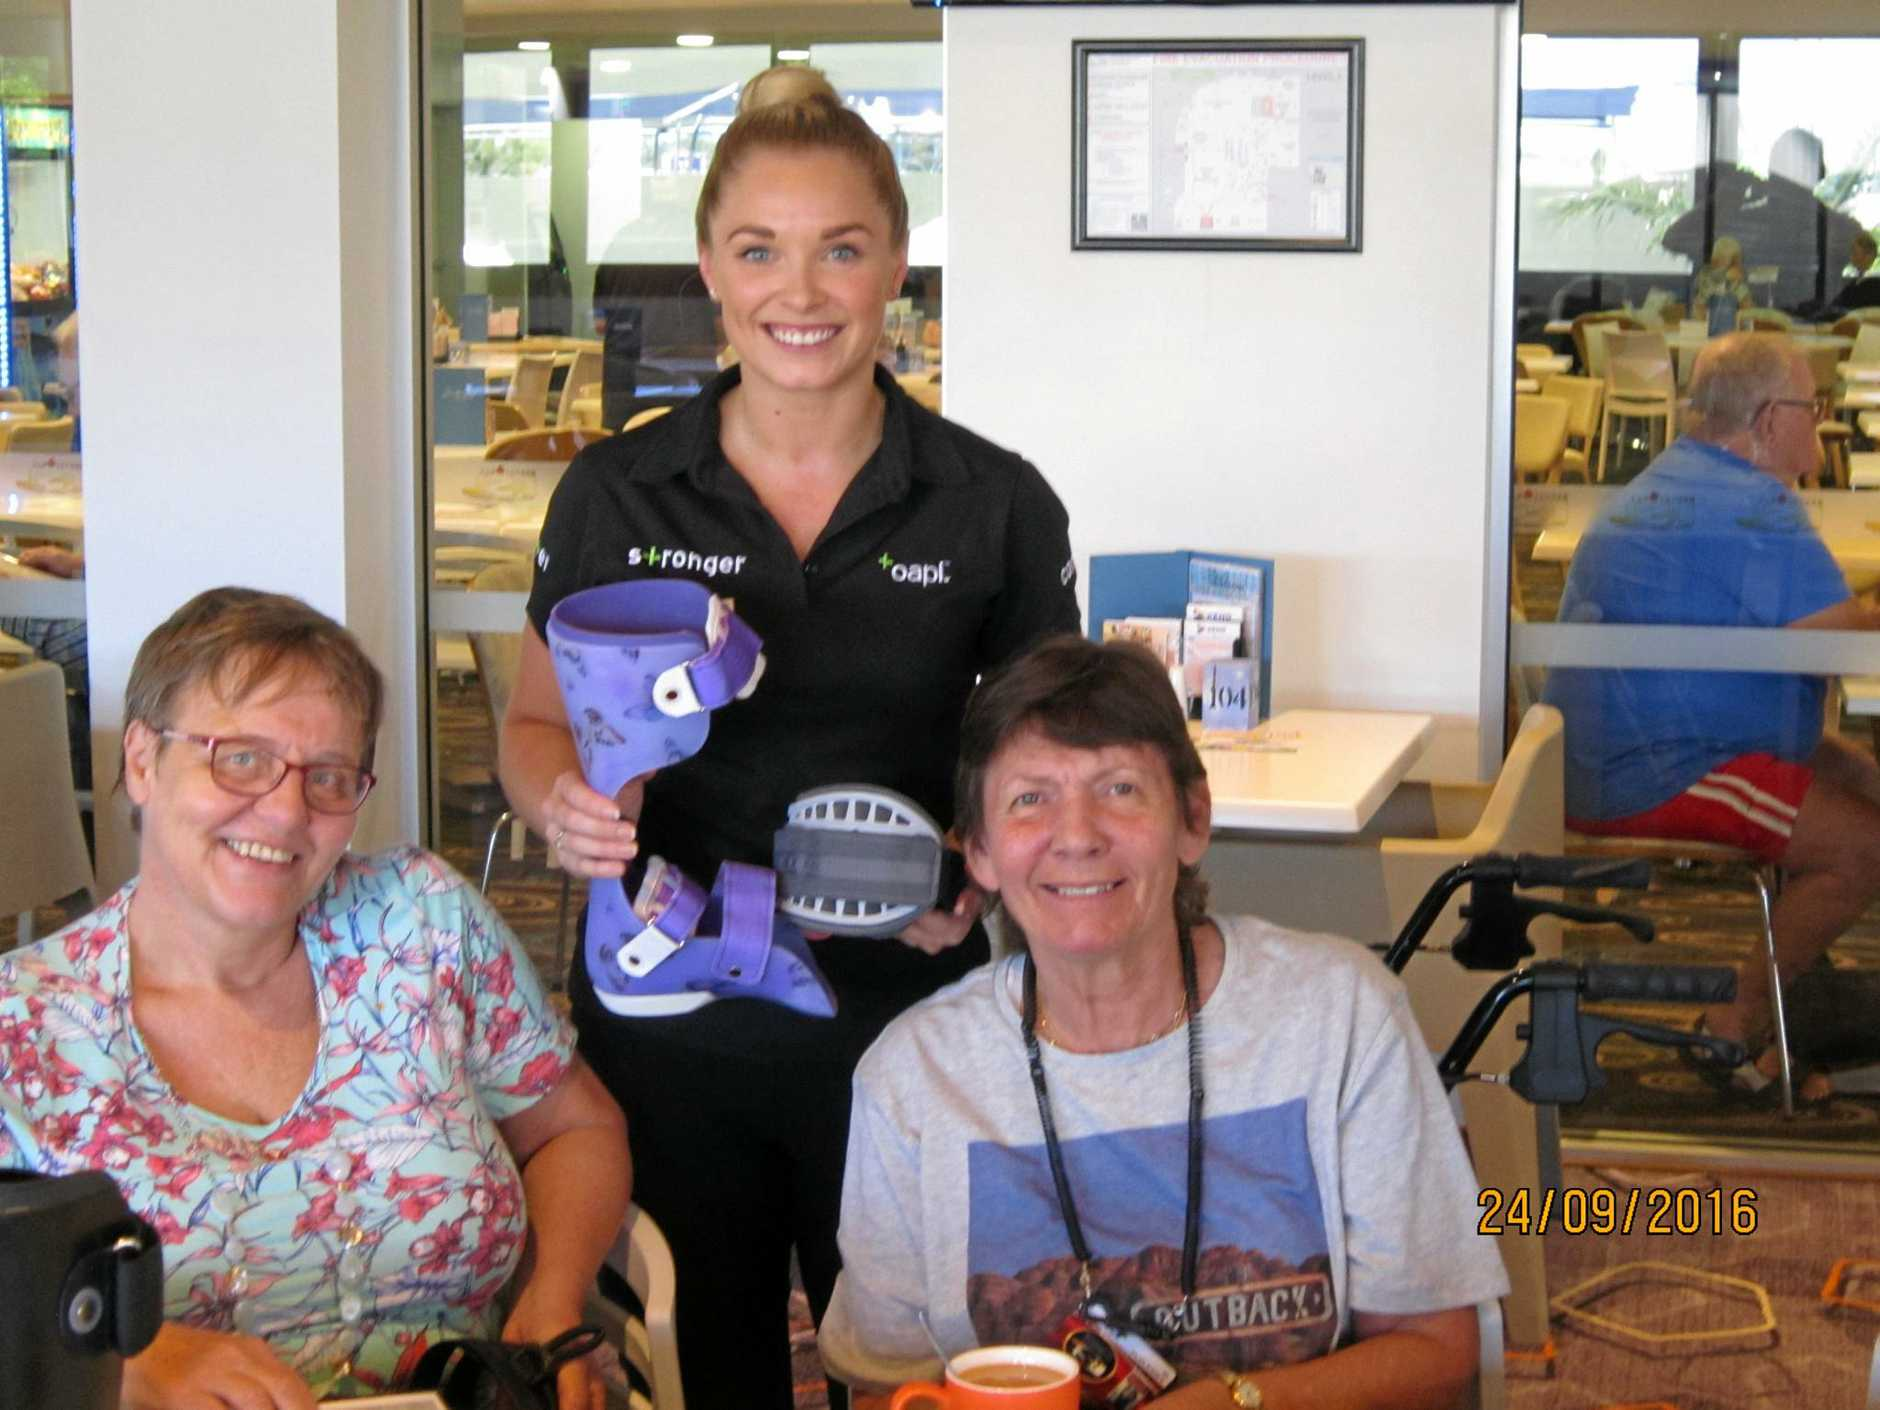 LEARN ING TOGETER: Hervey Bay and Maryborough MS Group L to R. Alison Schenk from 'OAPL' with members Angelika and Alison at March meeting.